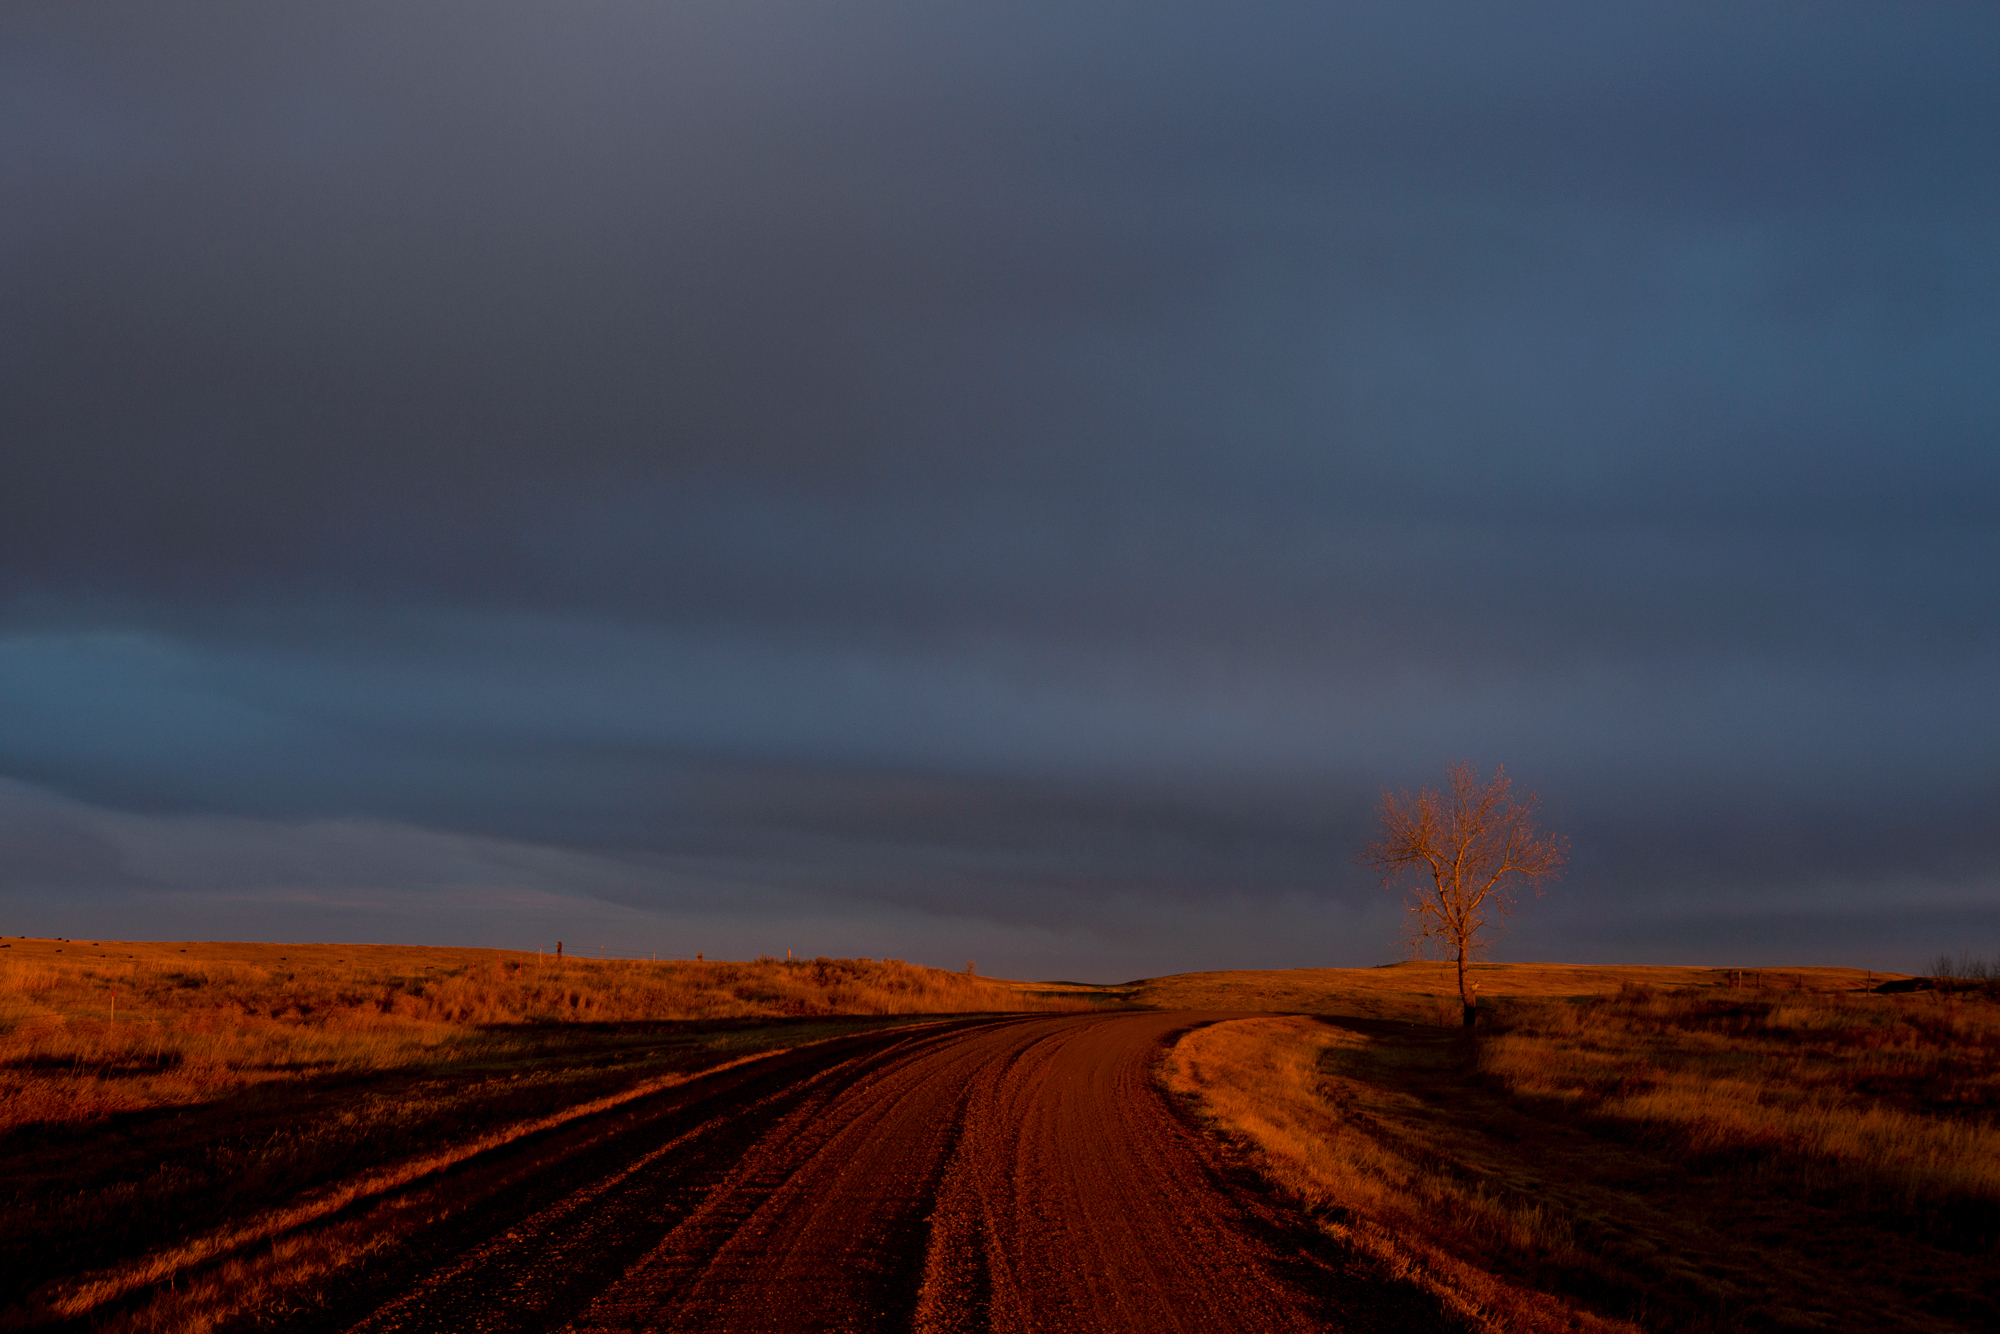 Sunset on the Standing Rock Reservation, N.D.